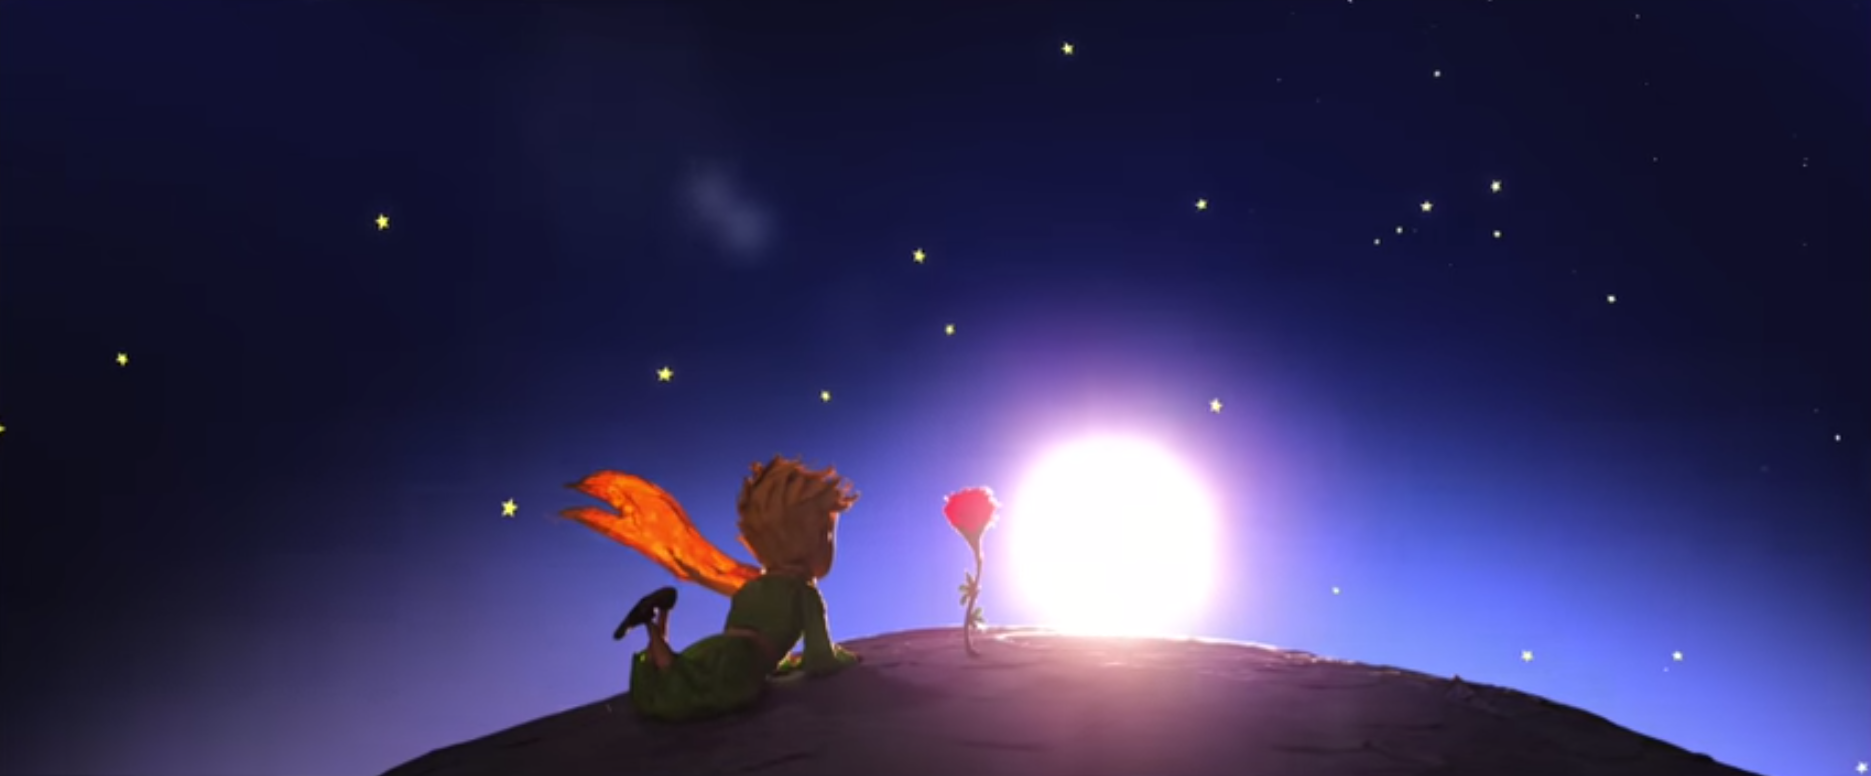 the little prince com 3614361936323619363435943634 364836113655360936053633362336493607360935863629359135883609360736373656359436293610358836363604362336563634360536333623364836293591364836273609363936293585362336563634358836093629363936563609 35883609361436233585360936373657359436293610358836363604362336563634360536333623364836293591362636353588363335973649362136323648361136553609364835923657363435863629359136073640358536263619361936143626363636563591 361736293591358836093629363936563609360736403585358836093648361136553609364935883656 objects 36073633365735913654 36073637365635923619363635913654